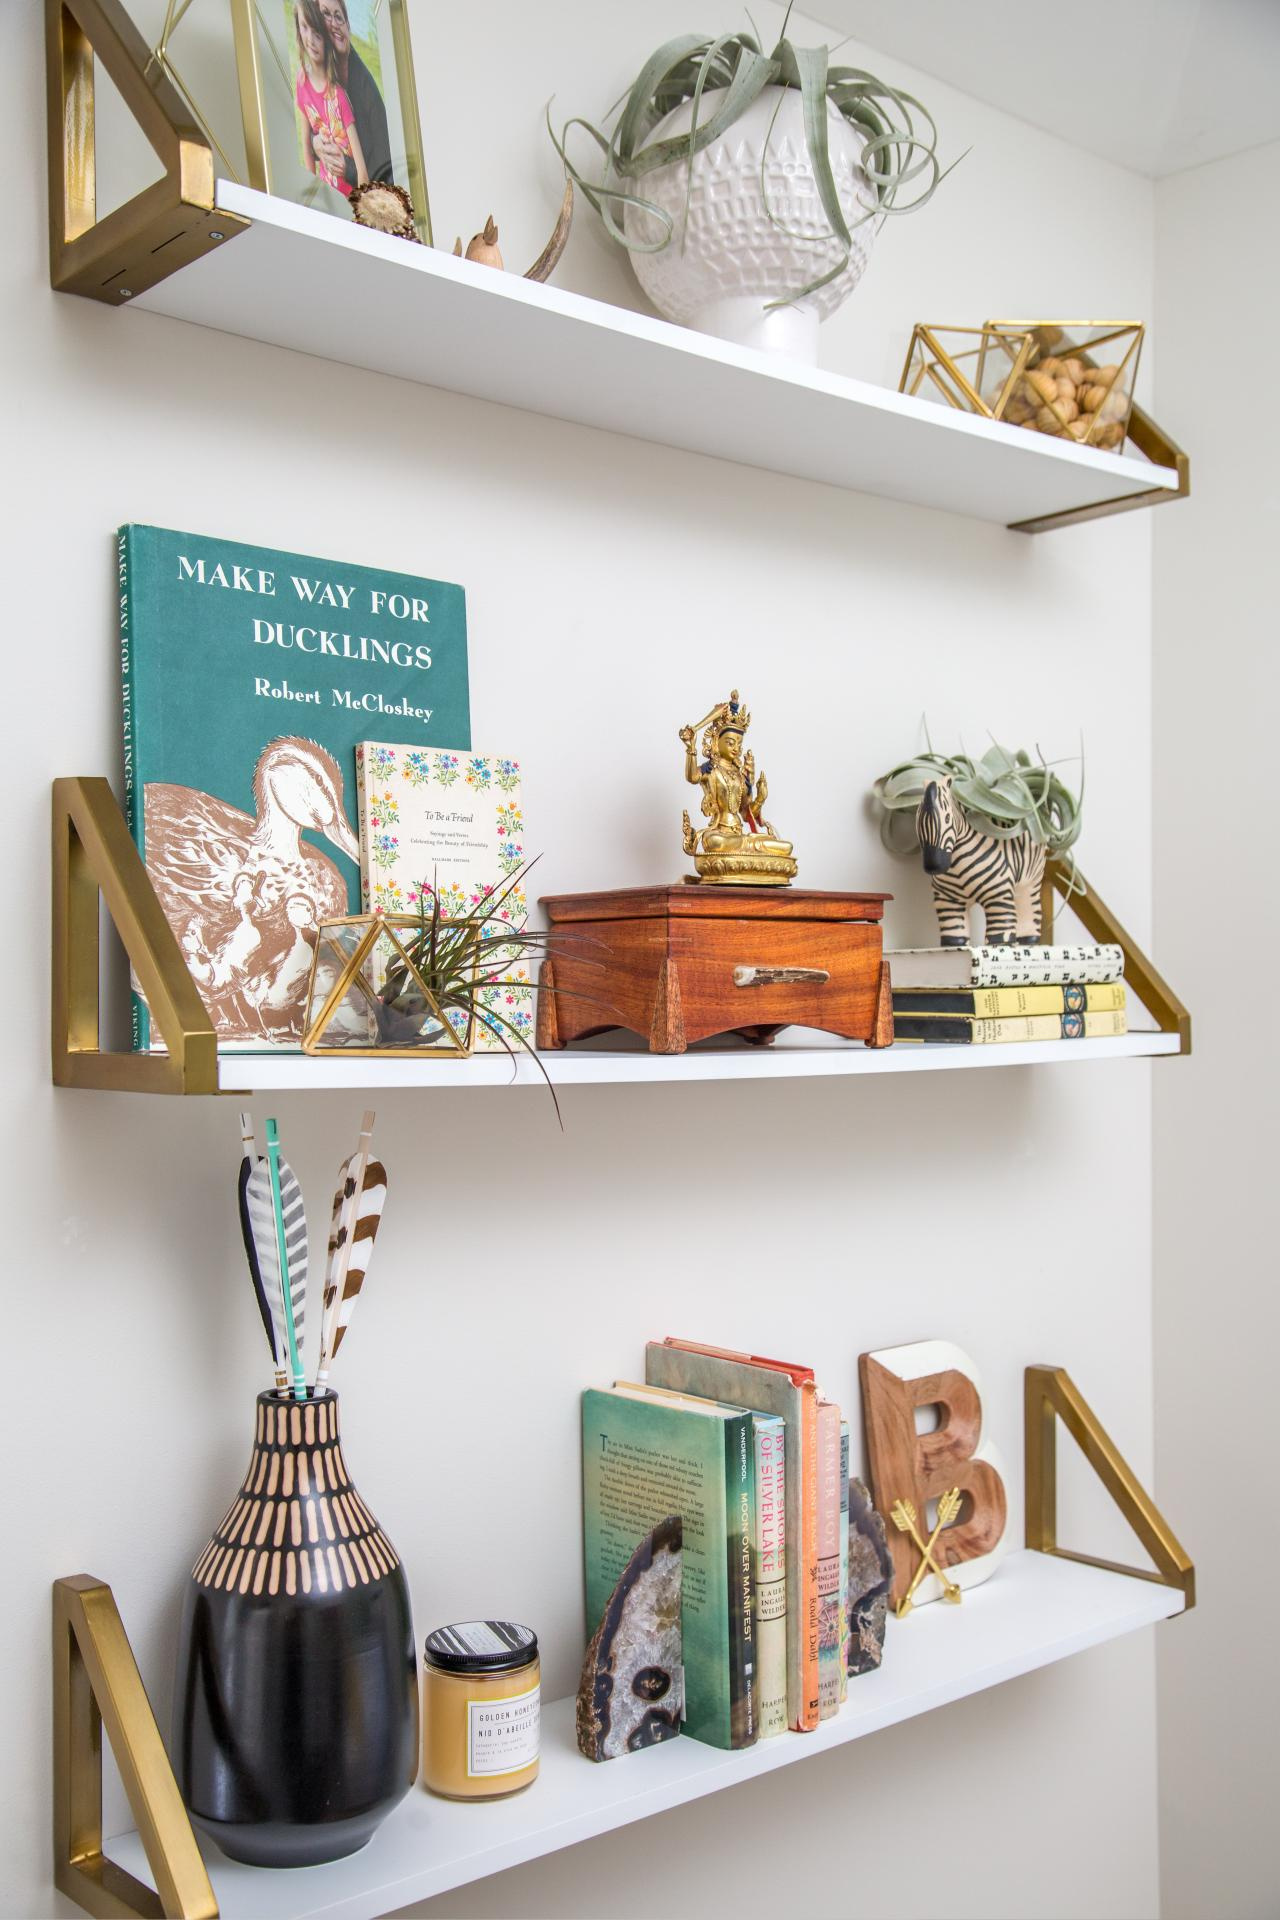 ways decorate with floating shelves decorating shelf configurations eclectic mix accessories round support pins heavy duty wall brackets for countertops corner display shoe